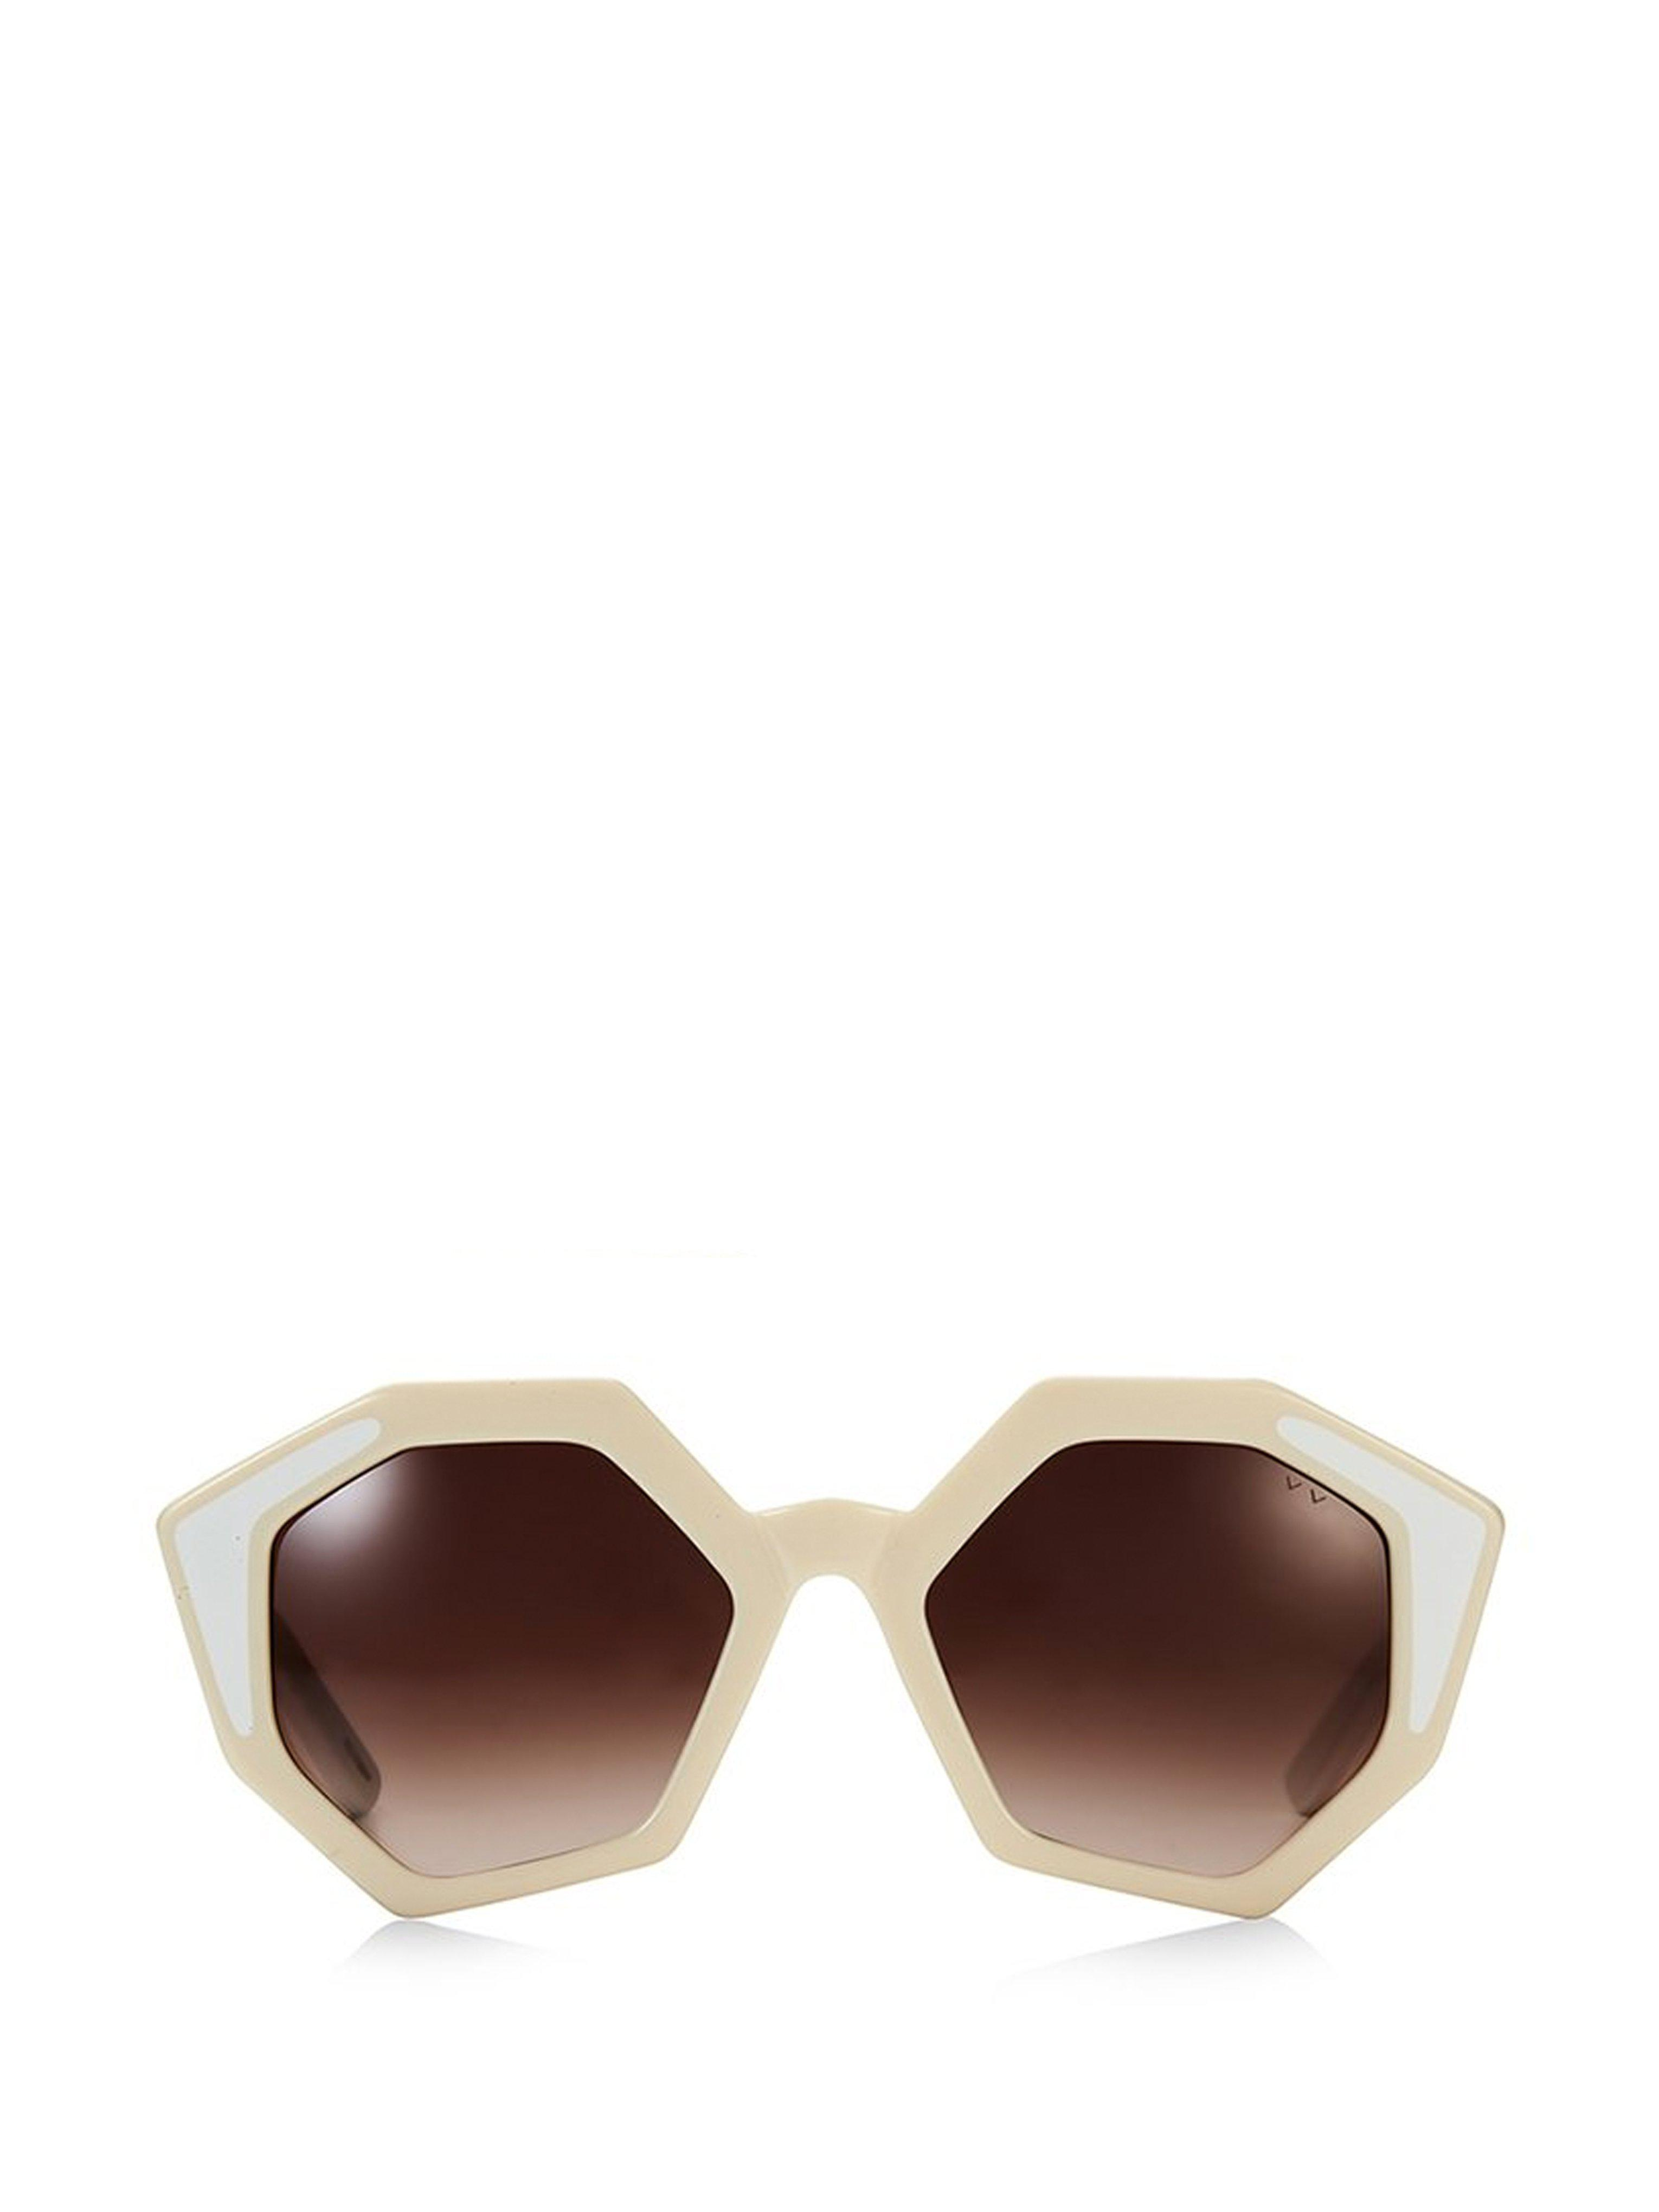 e3f2e9ee6a Lyst - Pared Eyewear Sole   Mare Ivory Sunglasses in Brown